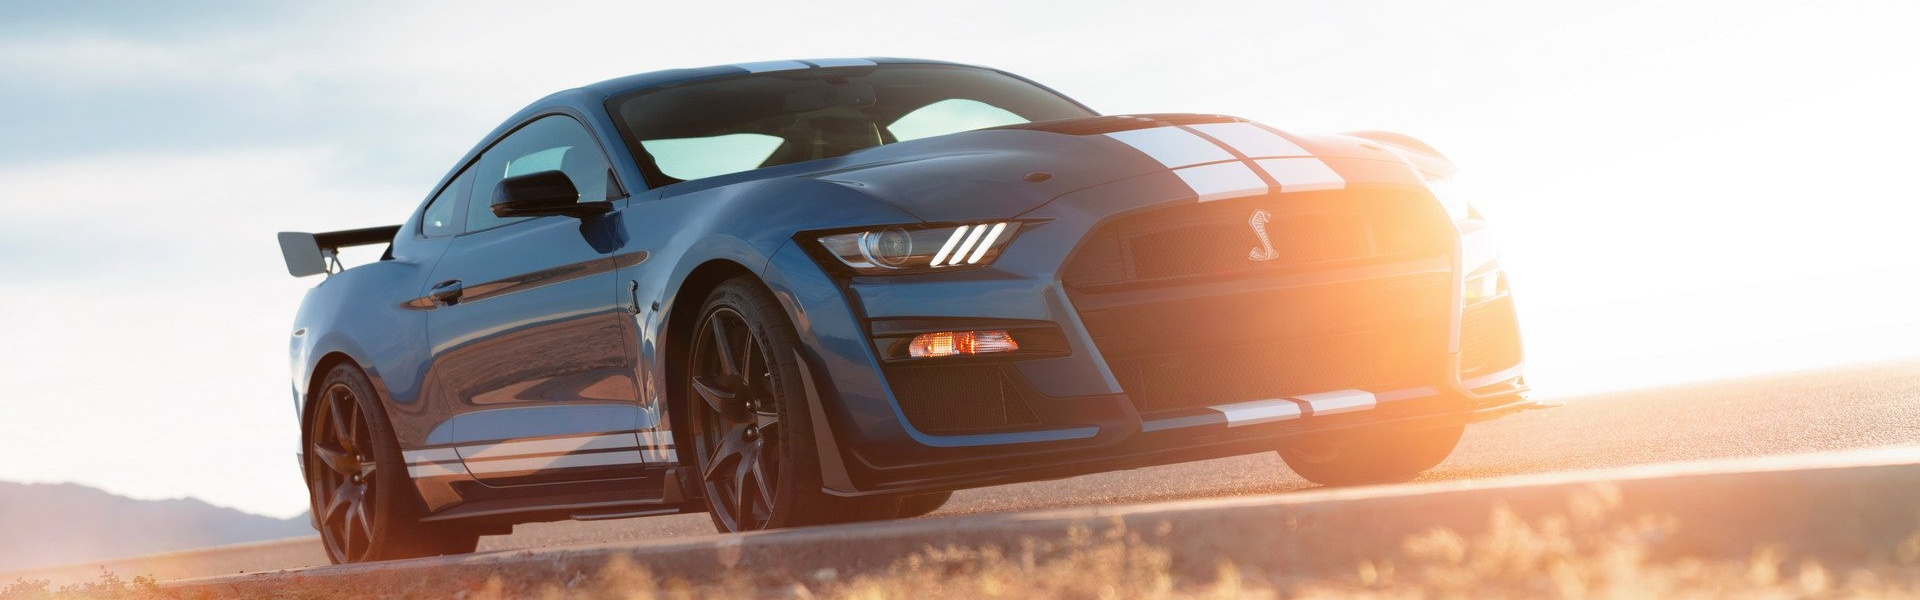 2020-ford-mustang-shelby-gt500-64.jpg